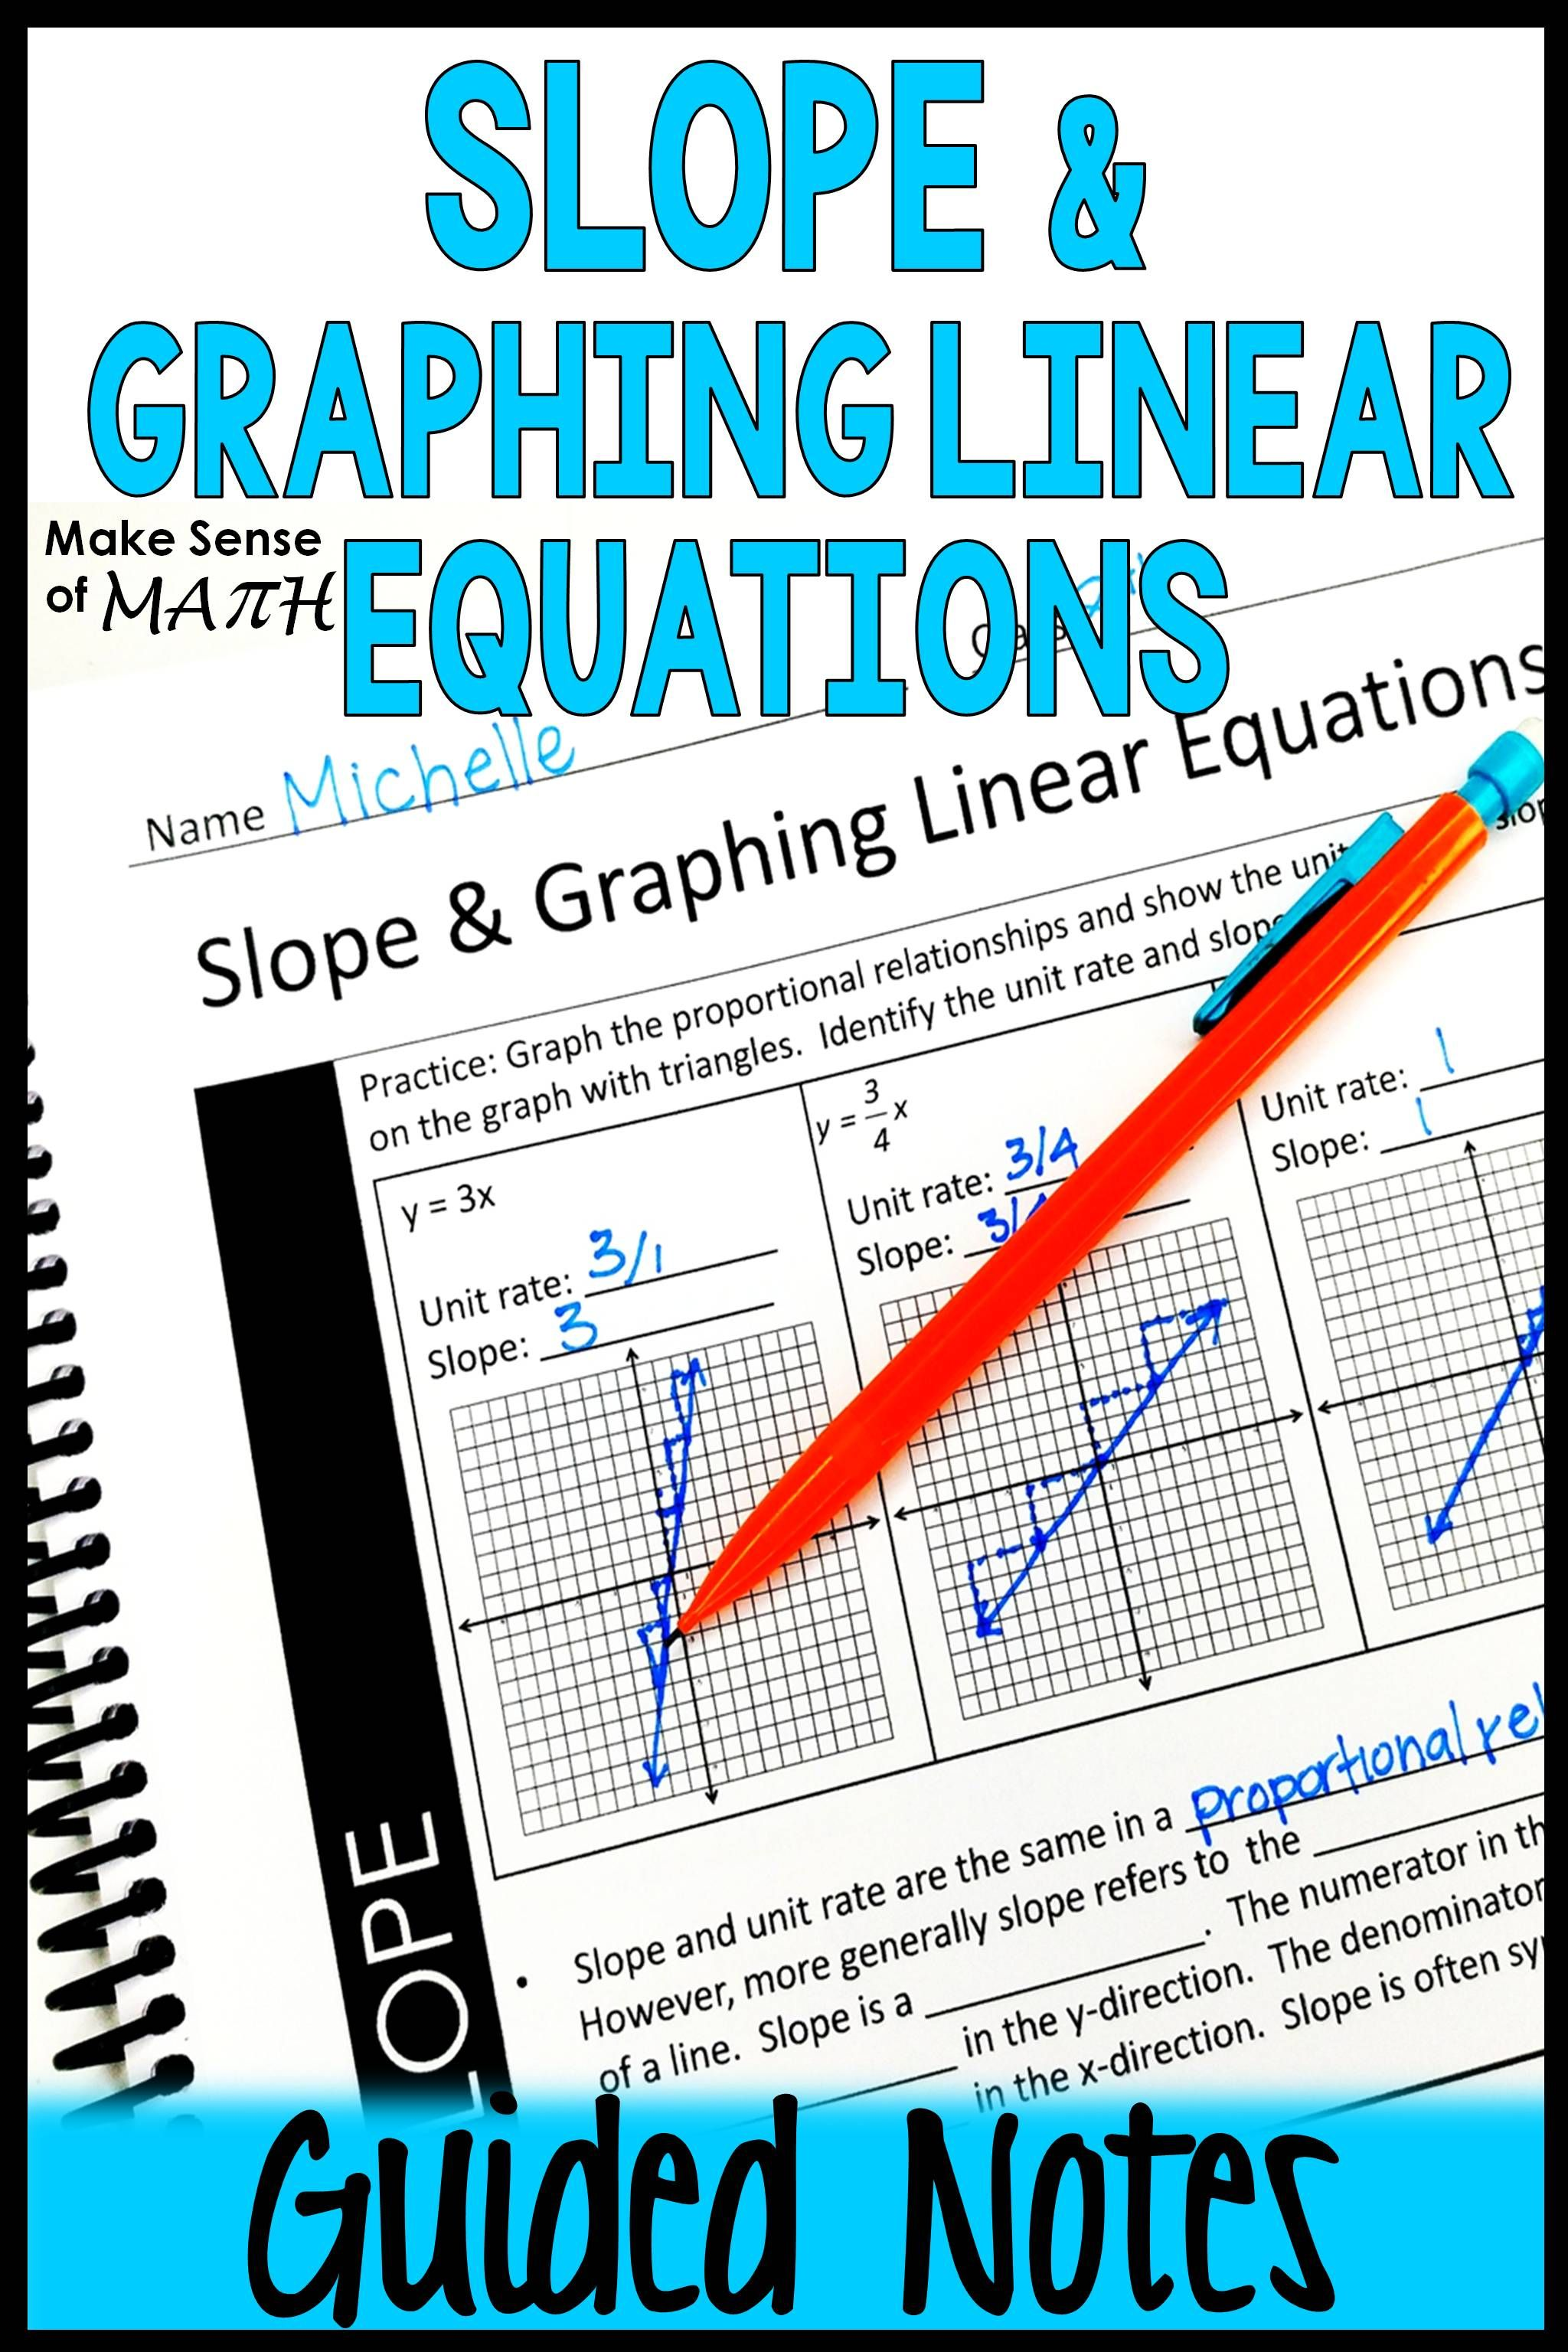 Slope and Graphing Linear Equations Notes   Graphing linear equations [ 3072 x 2048 Pixel ]